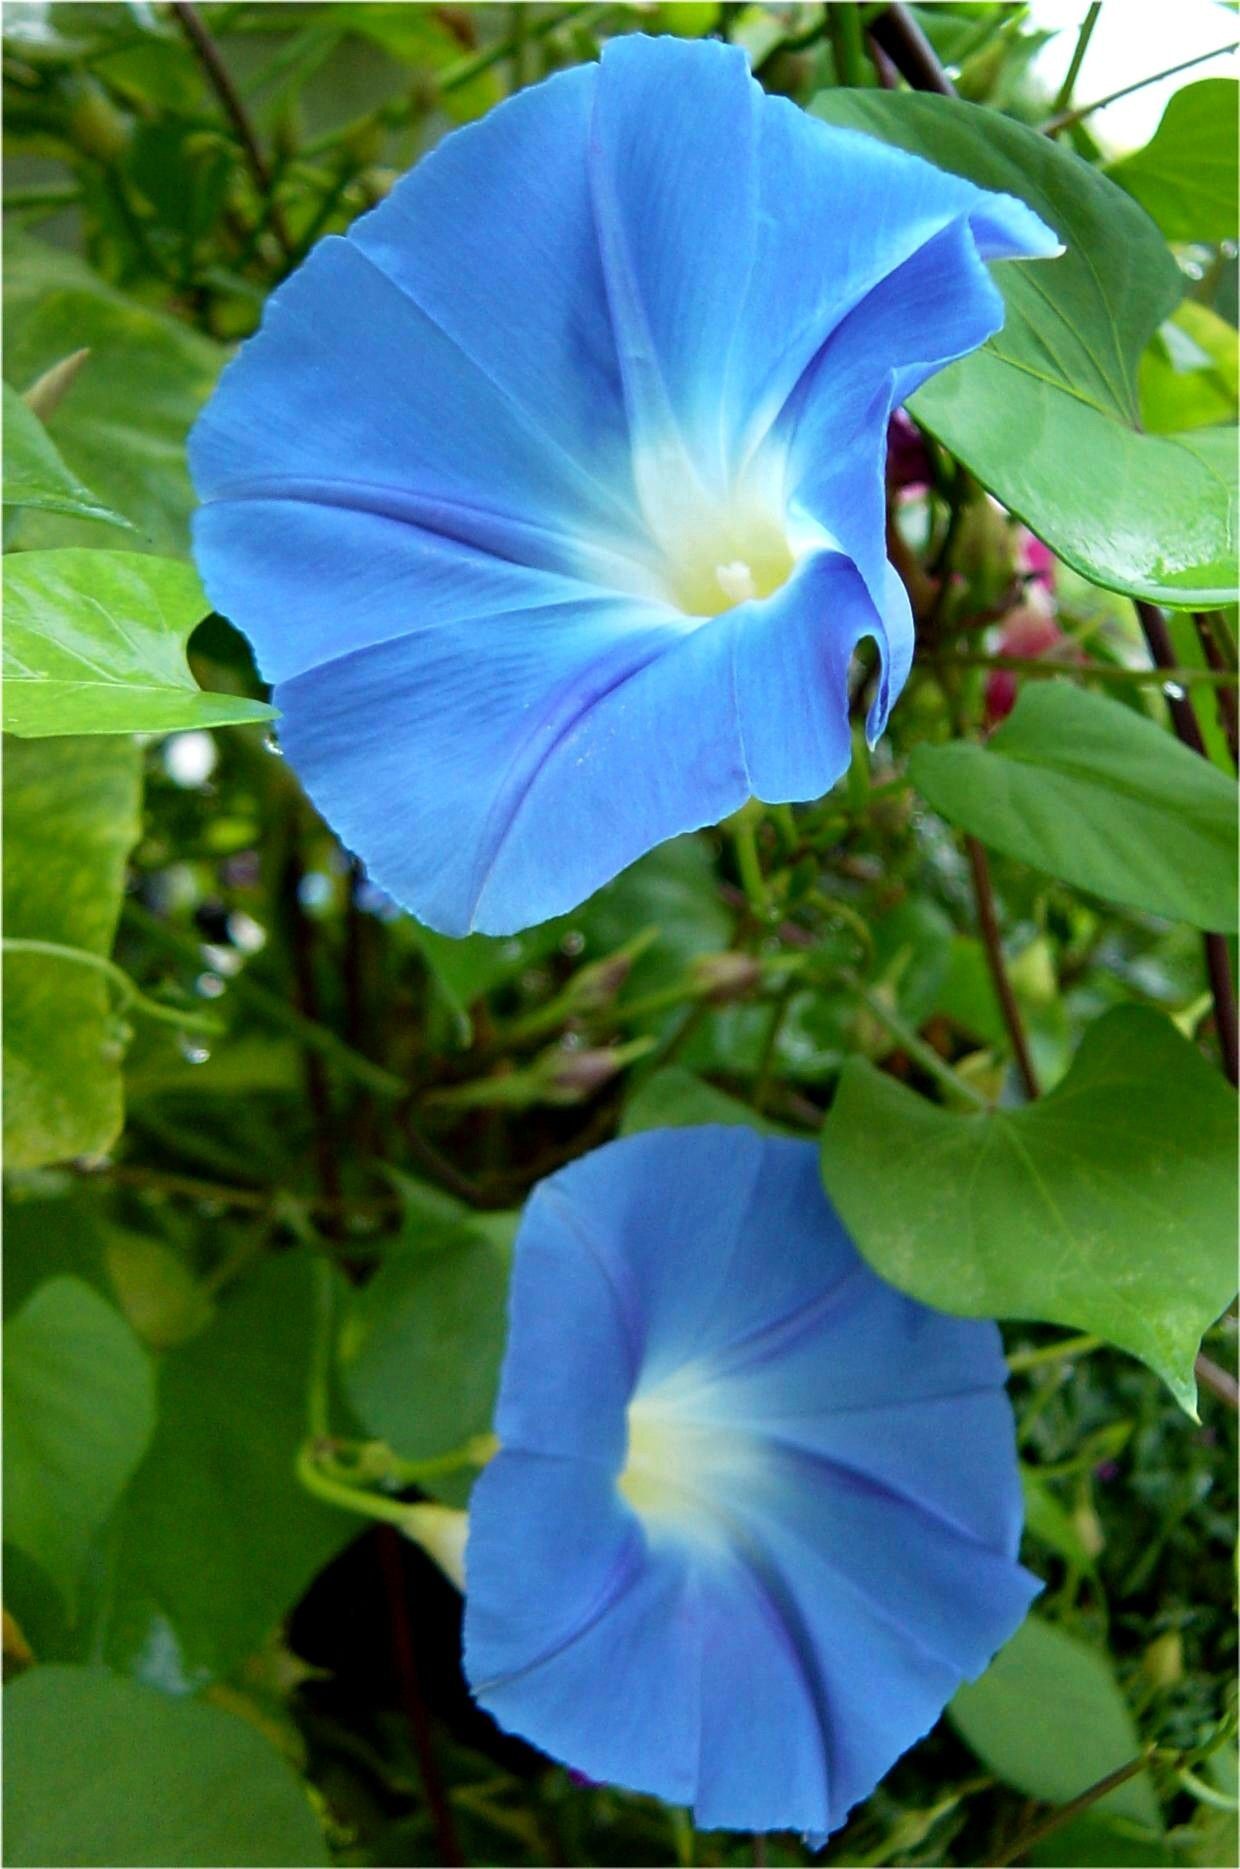 Blue Morning Glory I Depend On This Vine For Privacy On Our Deck Such A Fast Growing And Lush Vine Add Morning Glory Flowers Beautiful Flowers Garden Vines